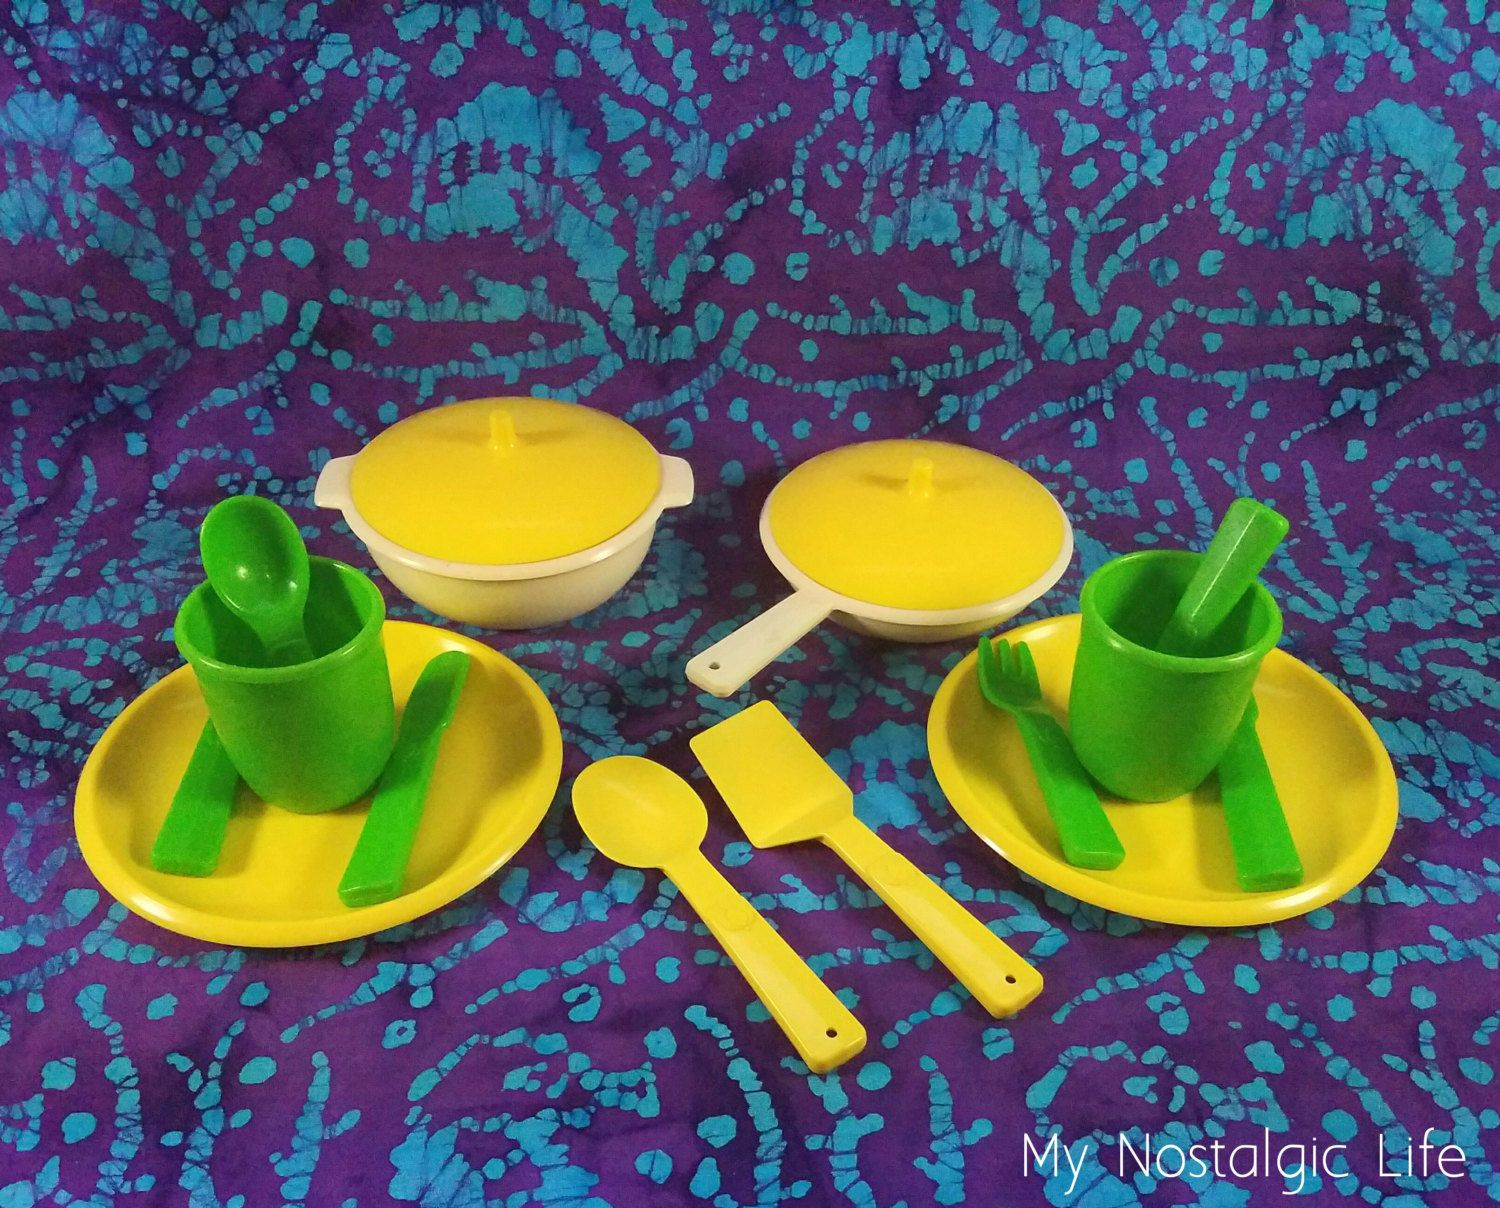 80 S Toys Little Tikes Play Kitchen 2 Place Settings Etsy Dishes